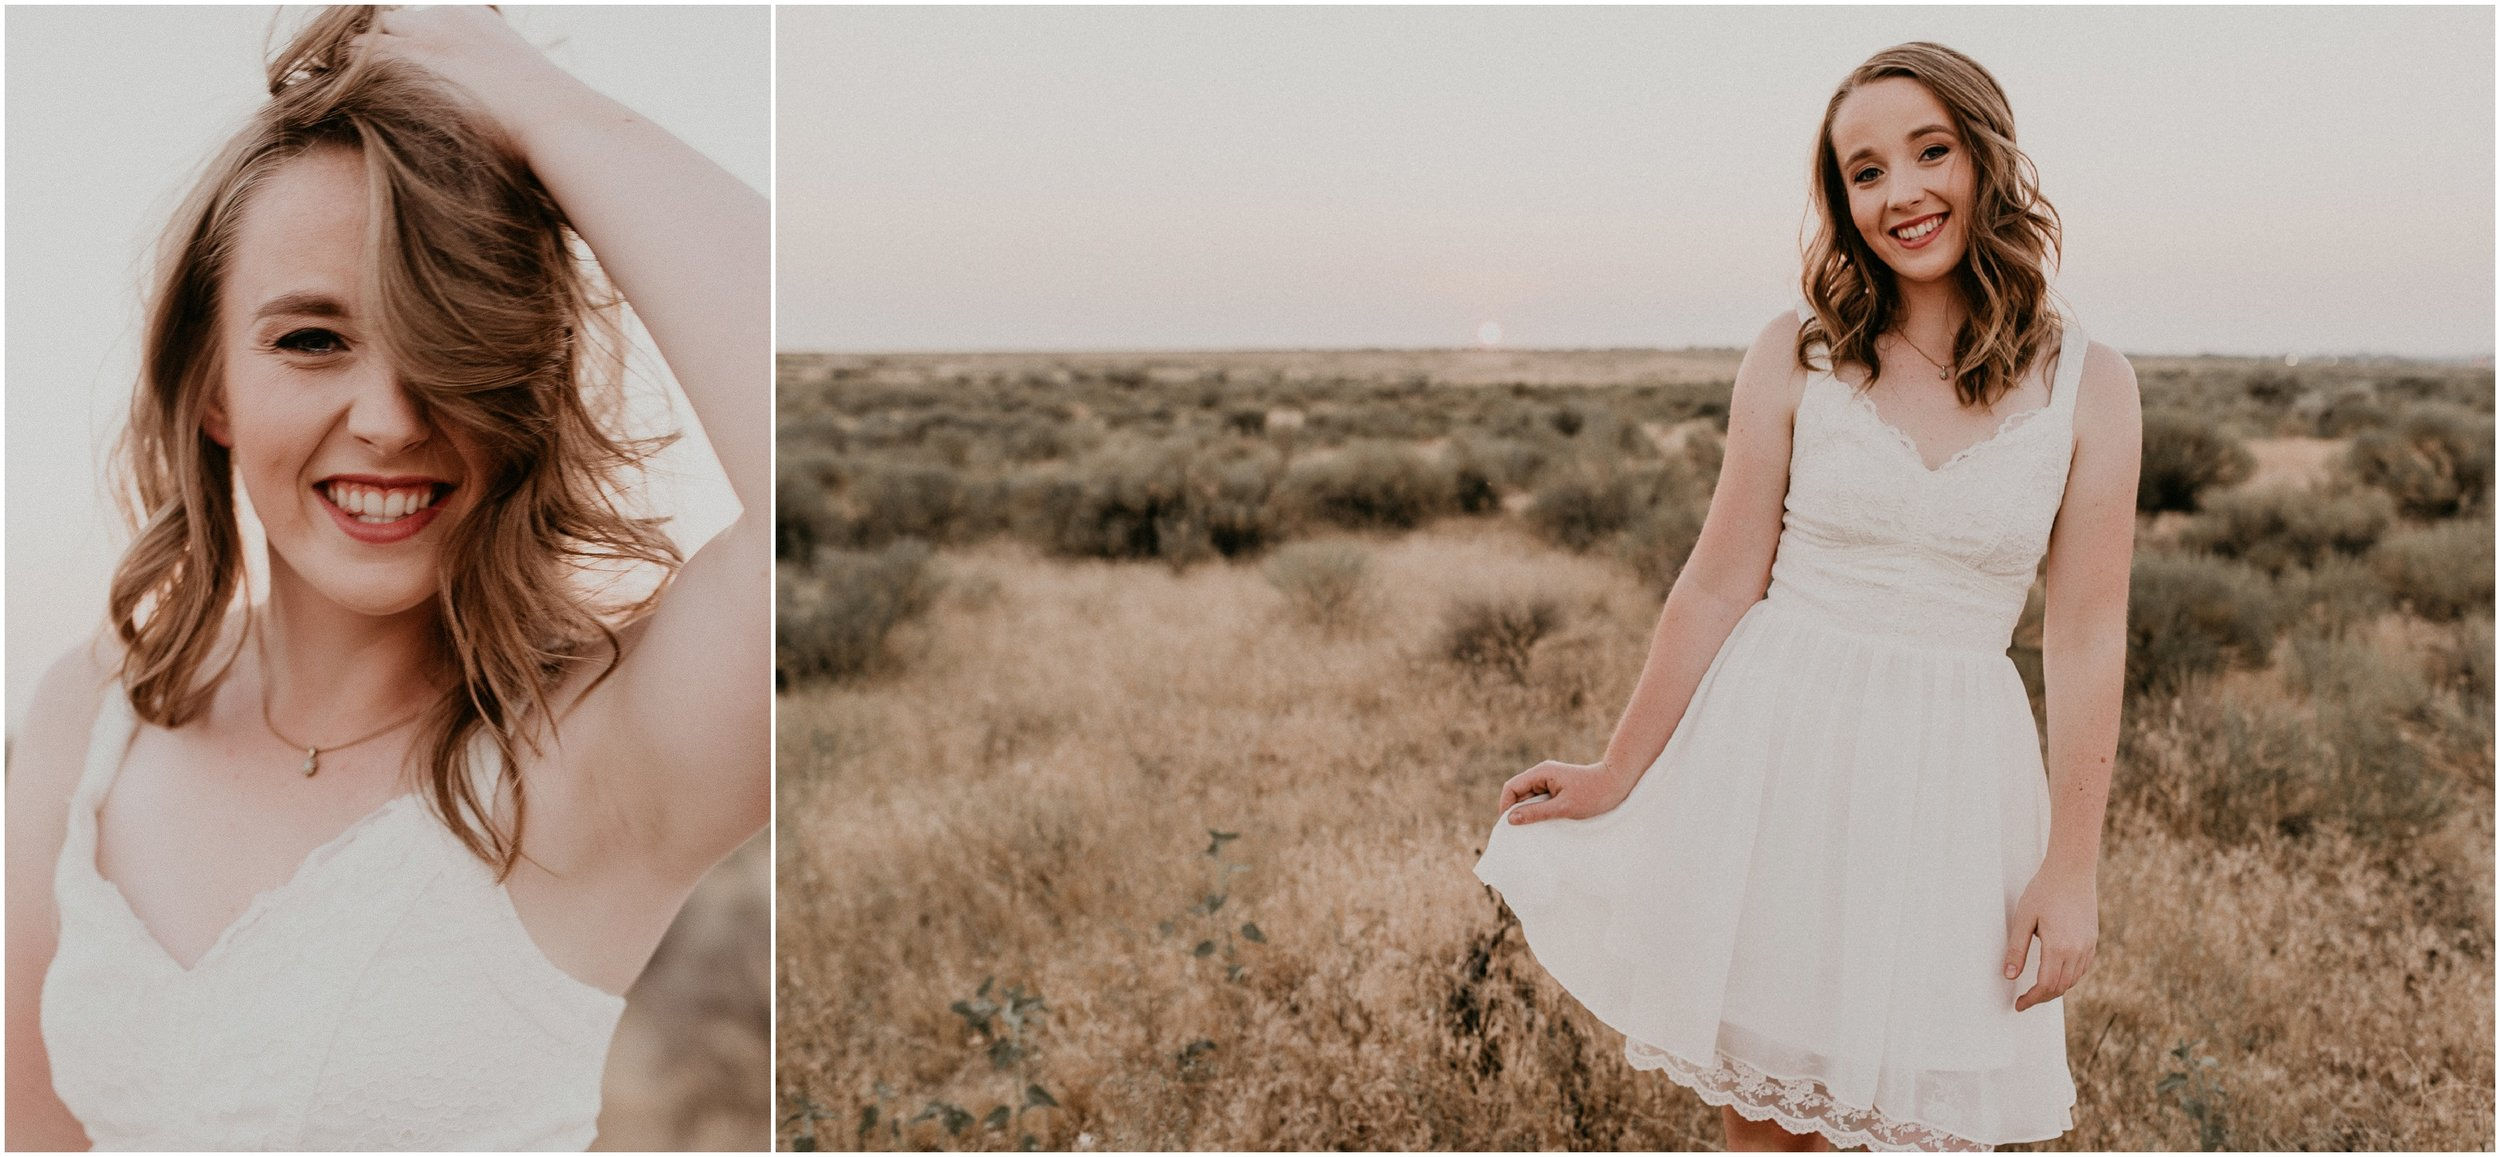 Boise Senior Photography Makayla Madden Photography Boise Idaho Foothills Sagebrush Desert Vintage Dress Bible Cole Valley Christian Summer Golden Hour